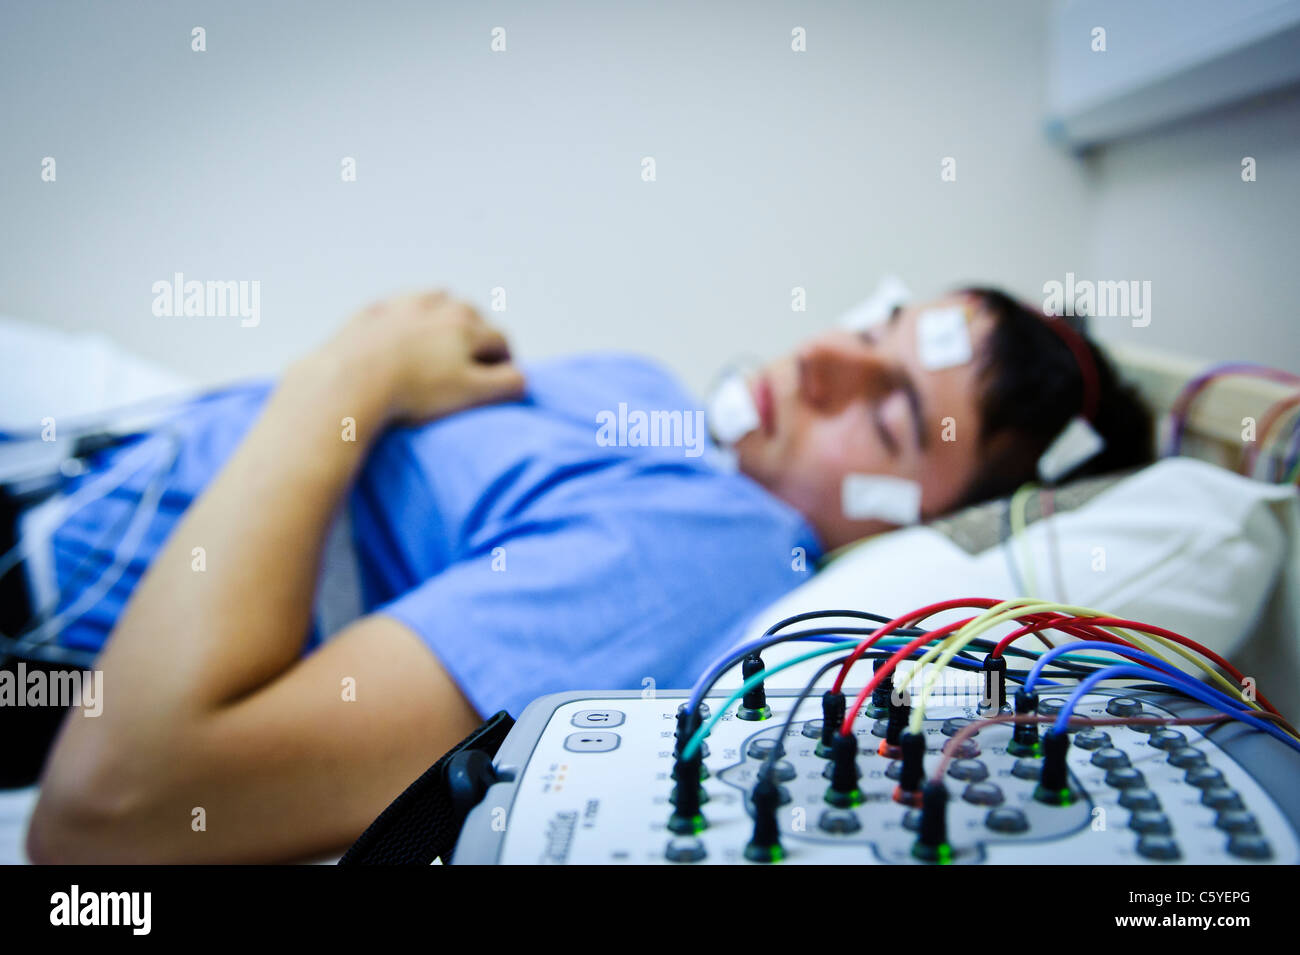 sleep lab EEG monitoring machine equipment electrodes and wires with subject in background blurred out - Stock Image